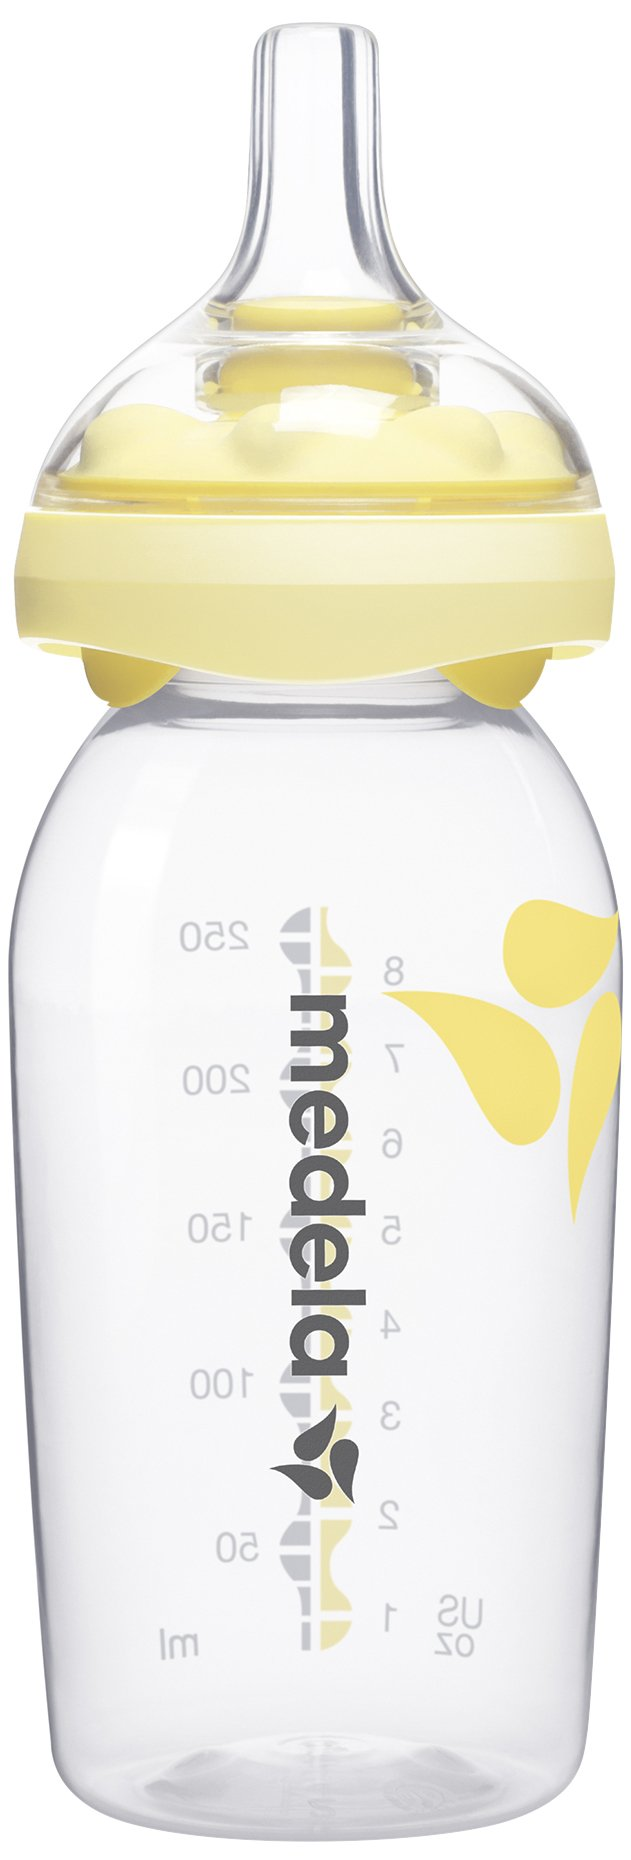 Medela Calma Breast Milk Bottle Nipple for Breastmilk Feeding, Mimics Natural Feeding, All Stage, Includes 2 - 8 Ounce Bottles, Made Without BPA